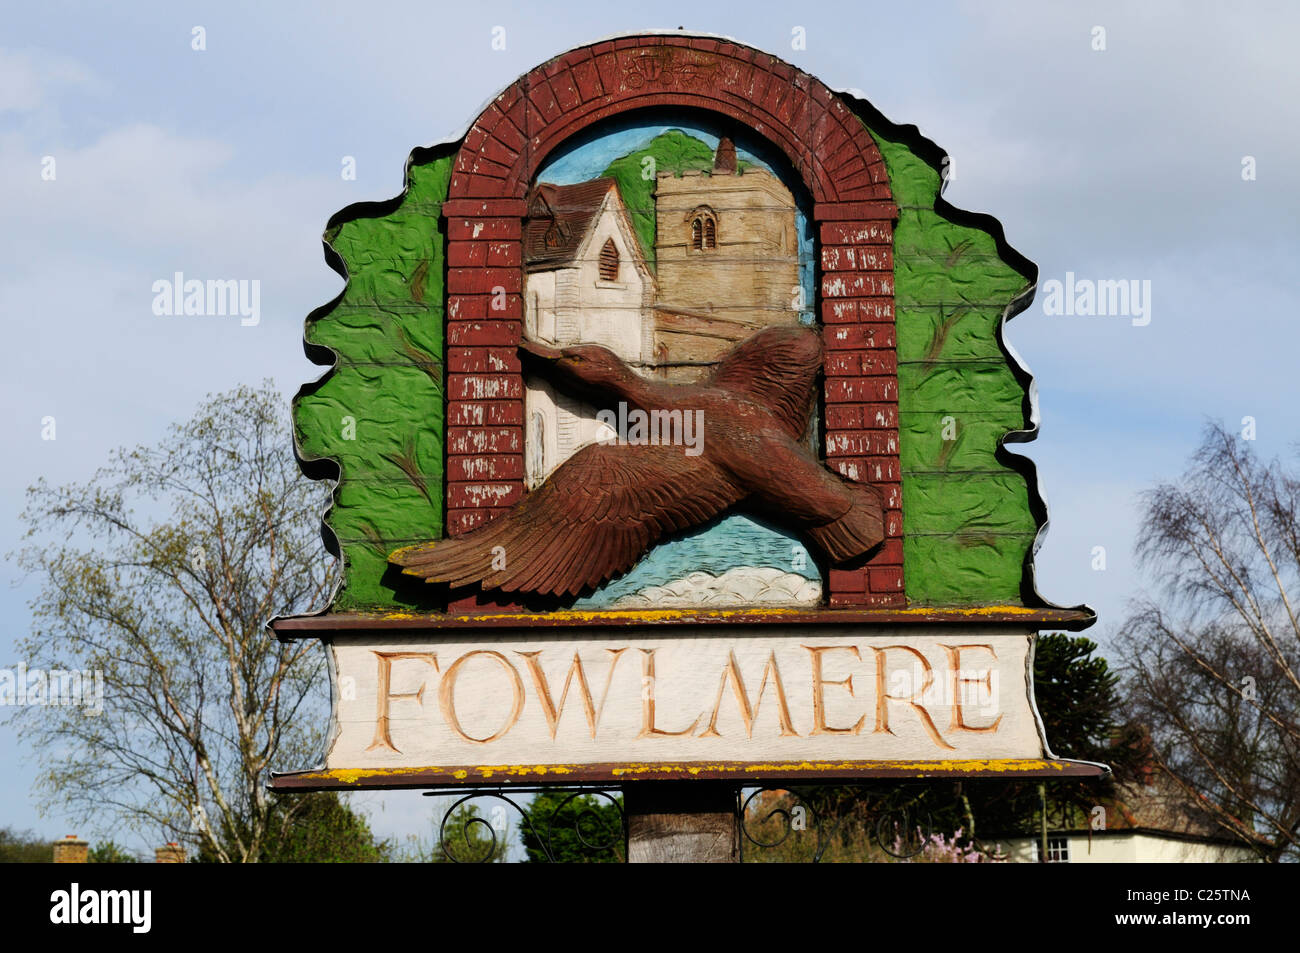 Fowlmere Village Sign, Cambridgeshire, England, UK - Stock Image